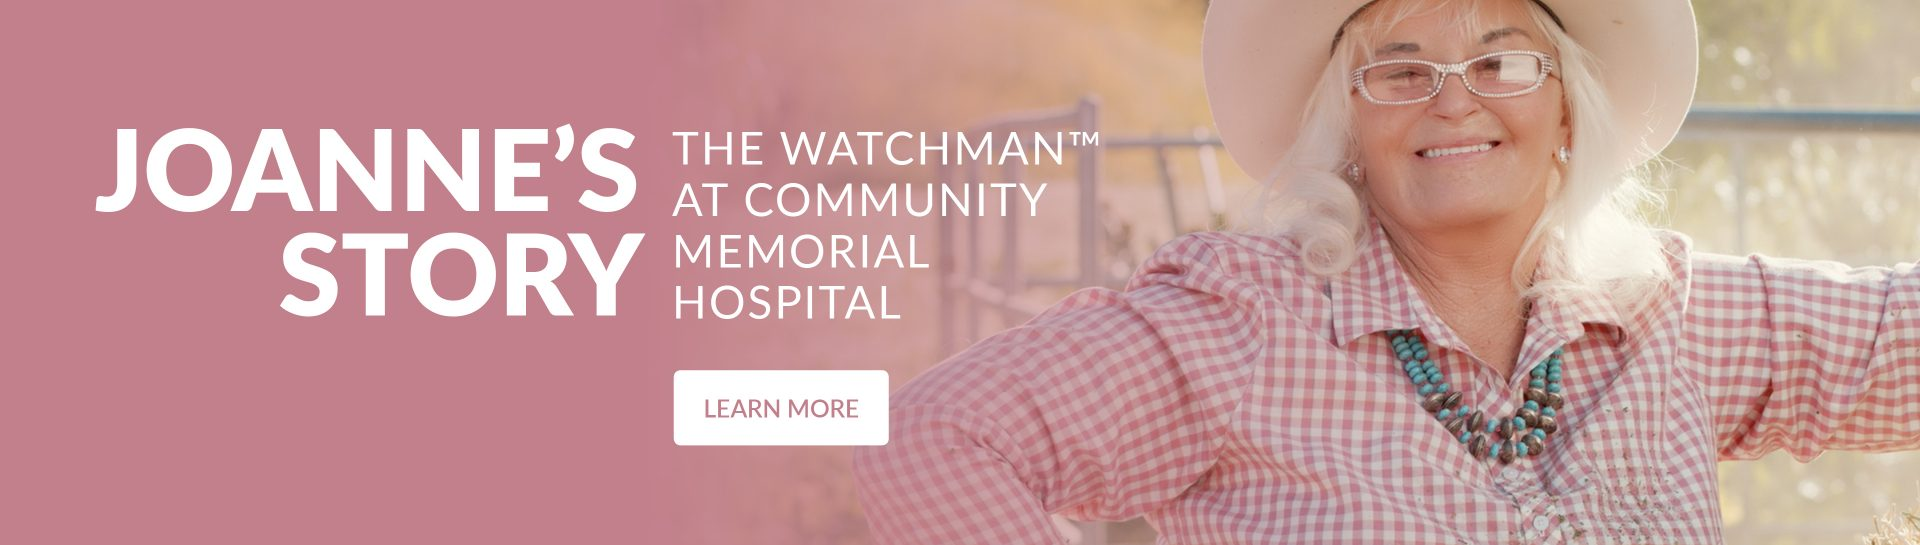 The Watchman at Community Memorial Hospital